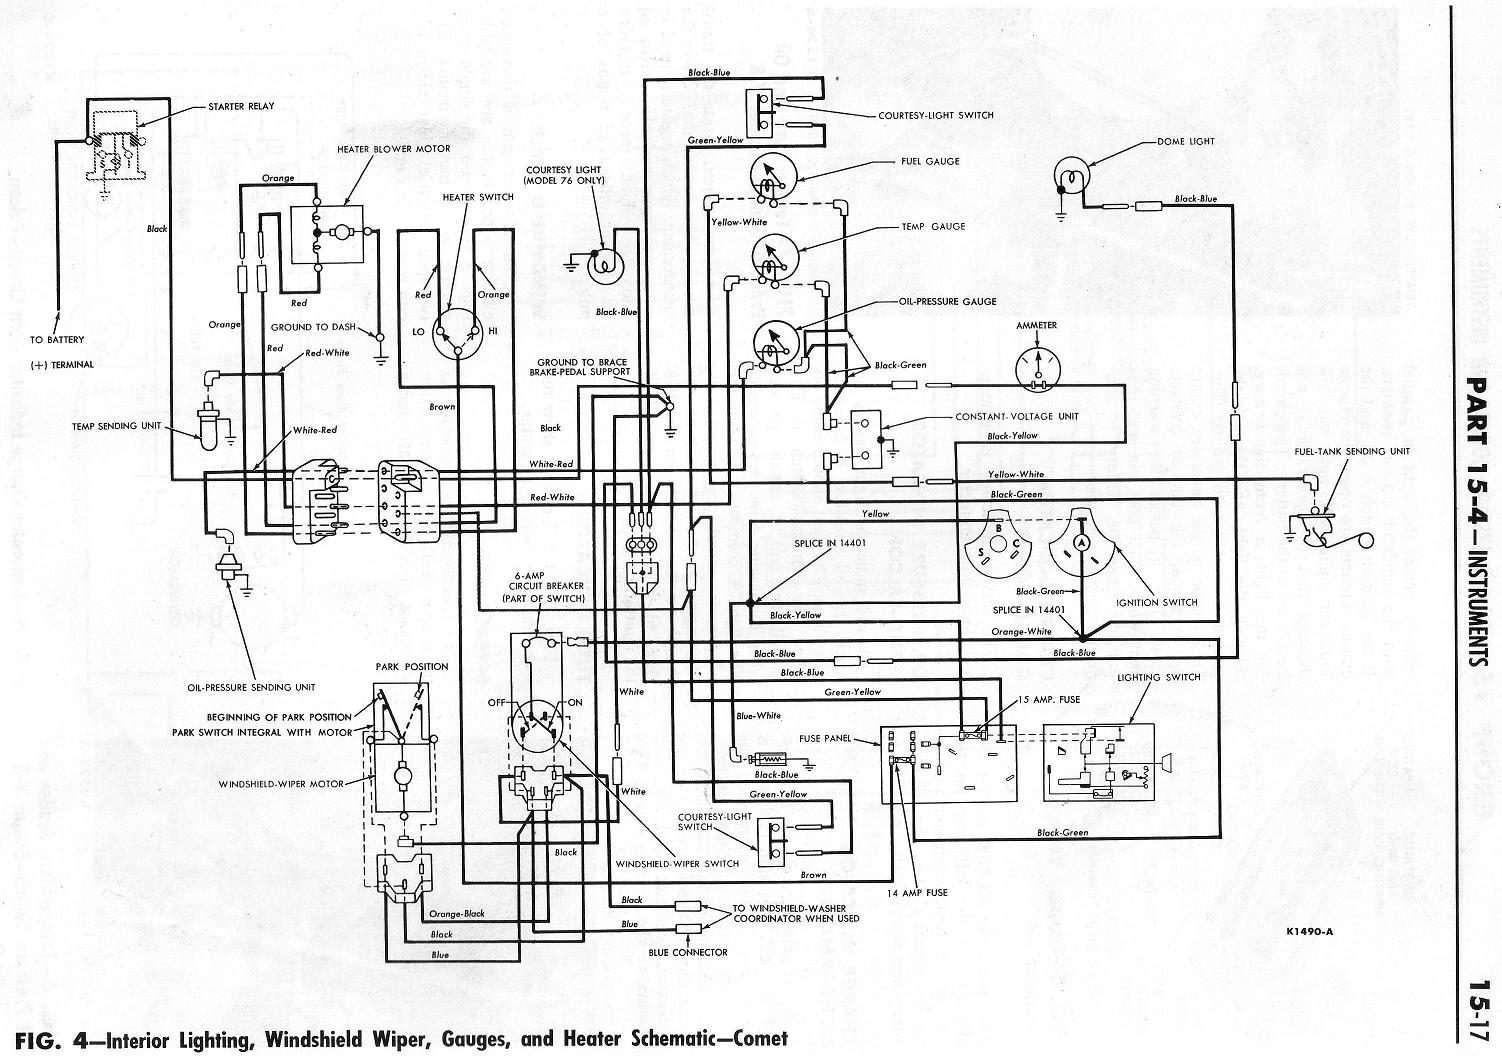 1966 Ford Galaxie 500 Wiring Diagram